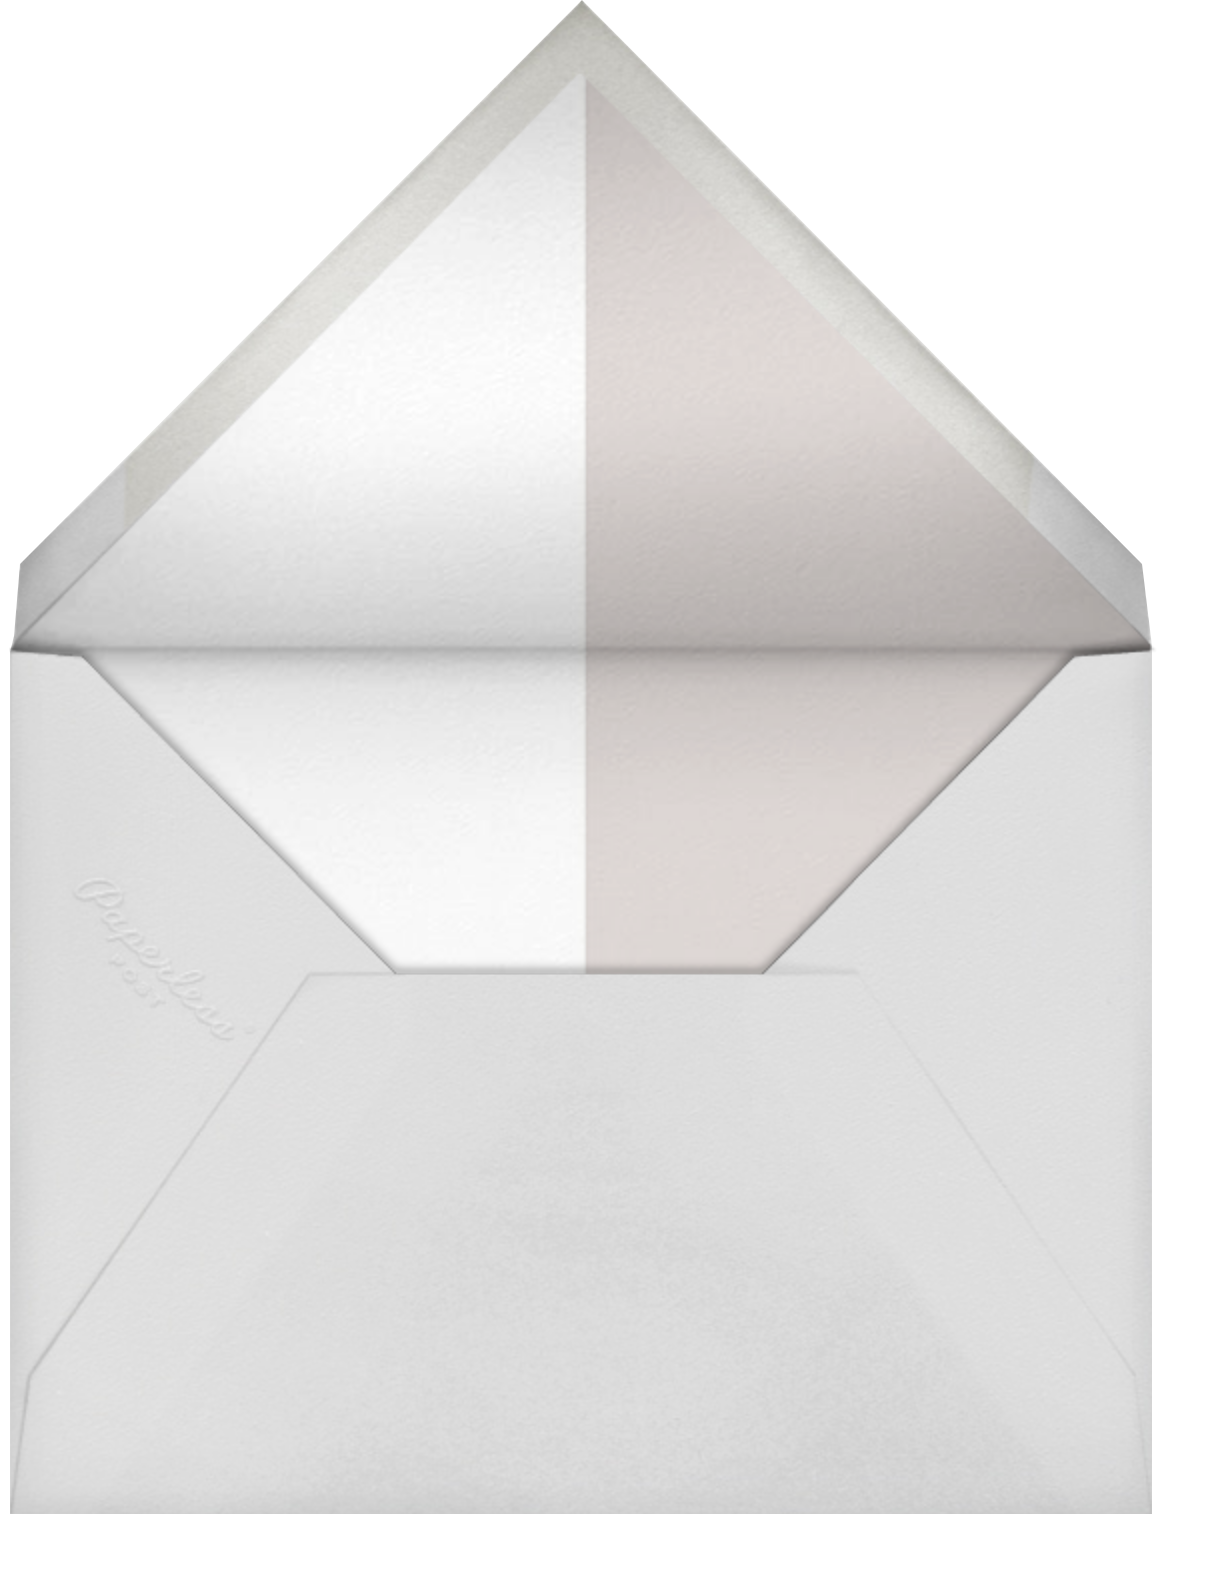 Burgoyne - Oyster/Gold - Paperless Post - Wedding postponement - envelope back